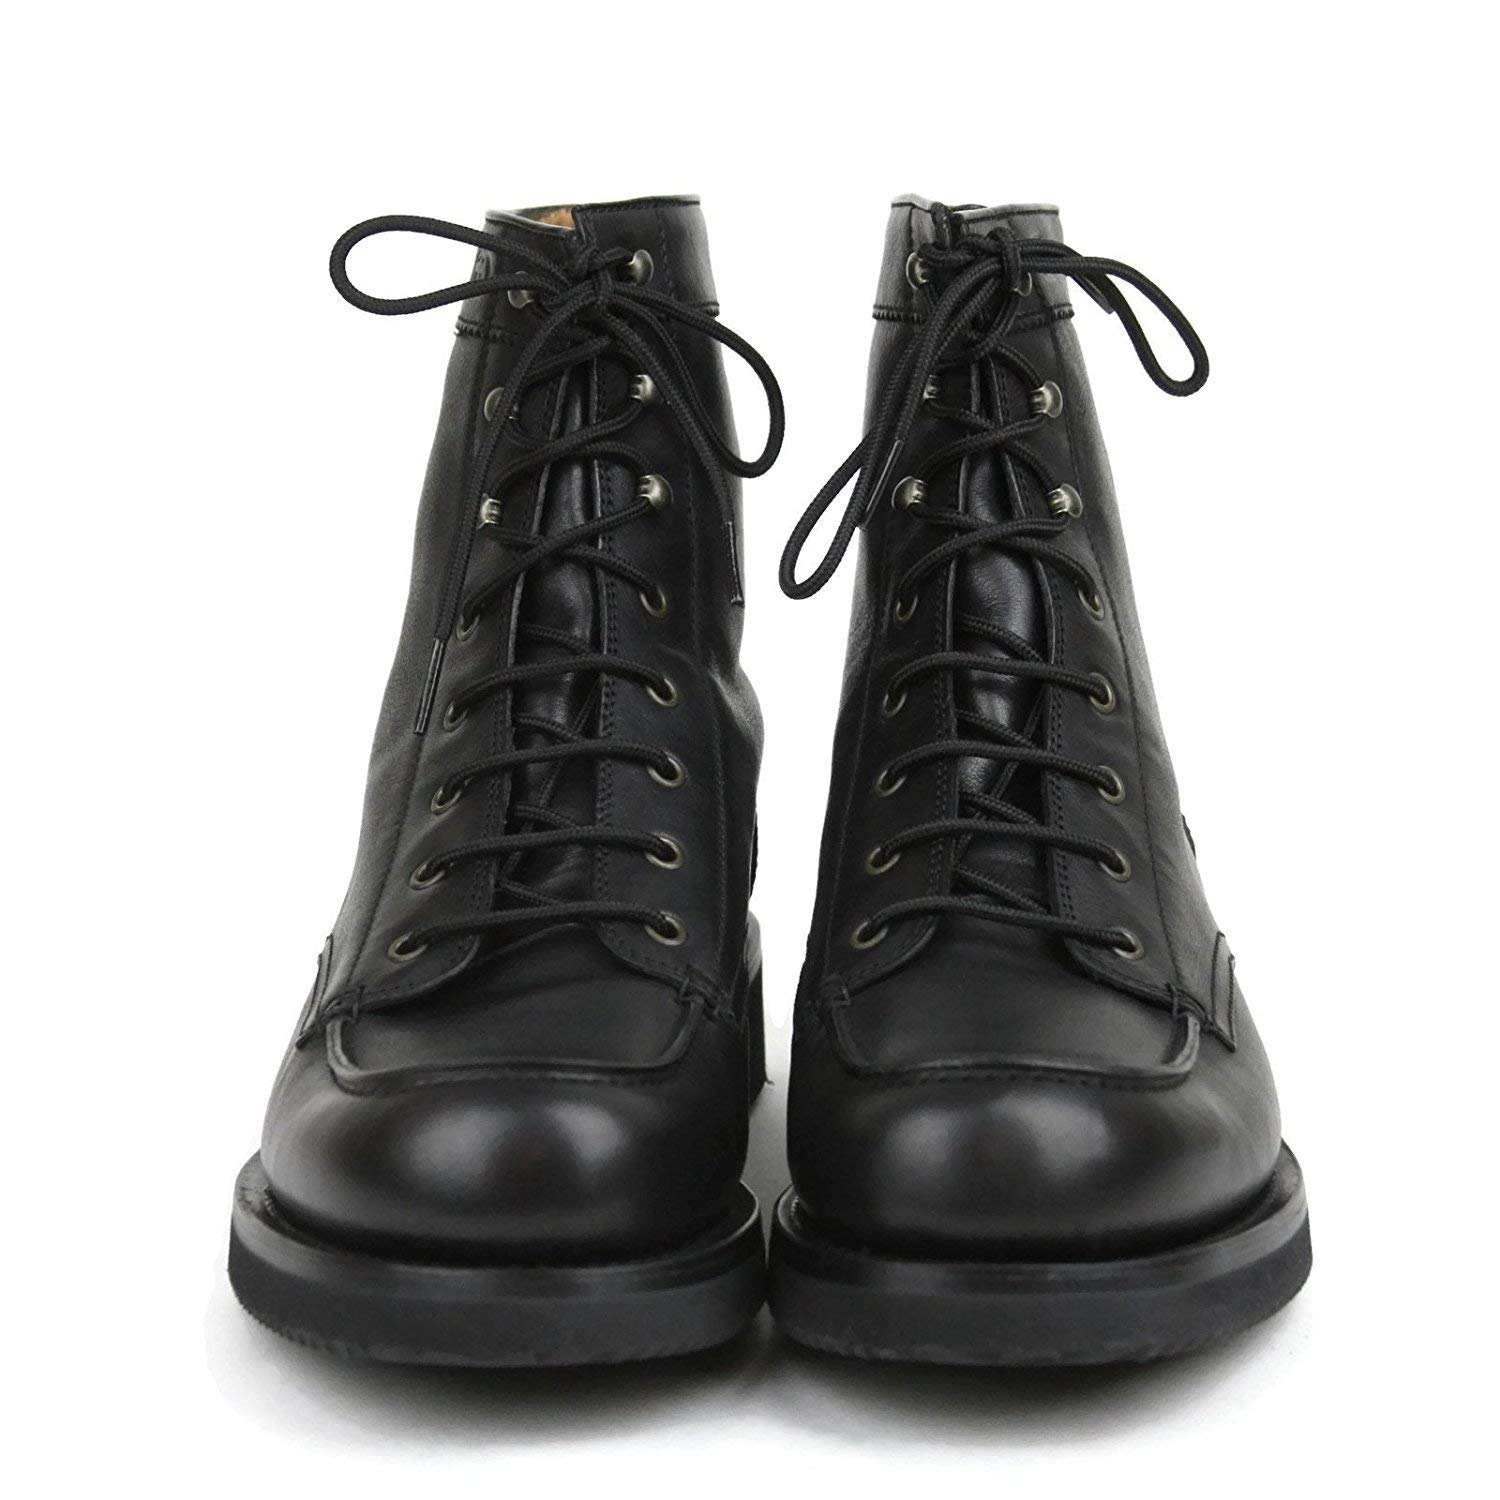 d67333ae620 Amazon.com  Gucci Men s Black Leather Interlocking G Lace Up Boots 352955  1000 (11.5 G  12.5 US)  Shoes